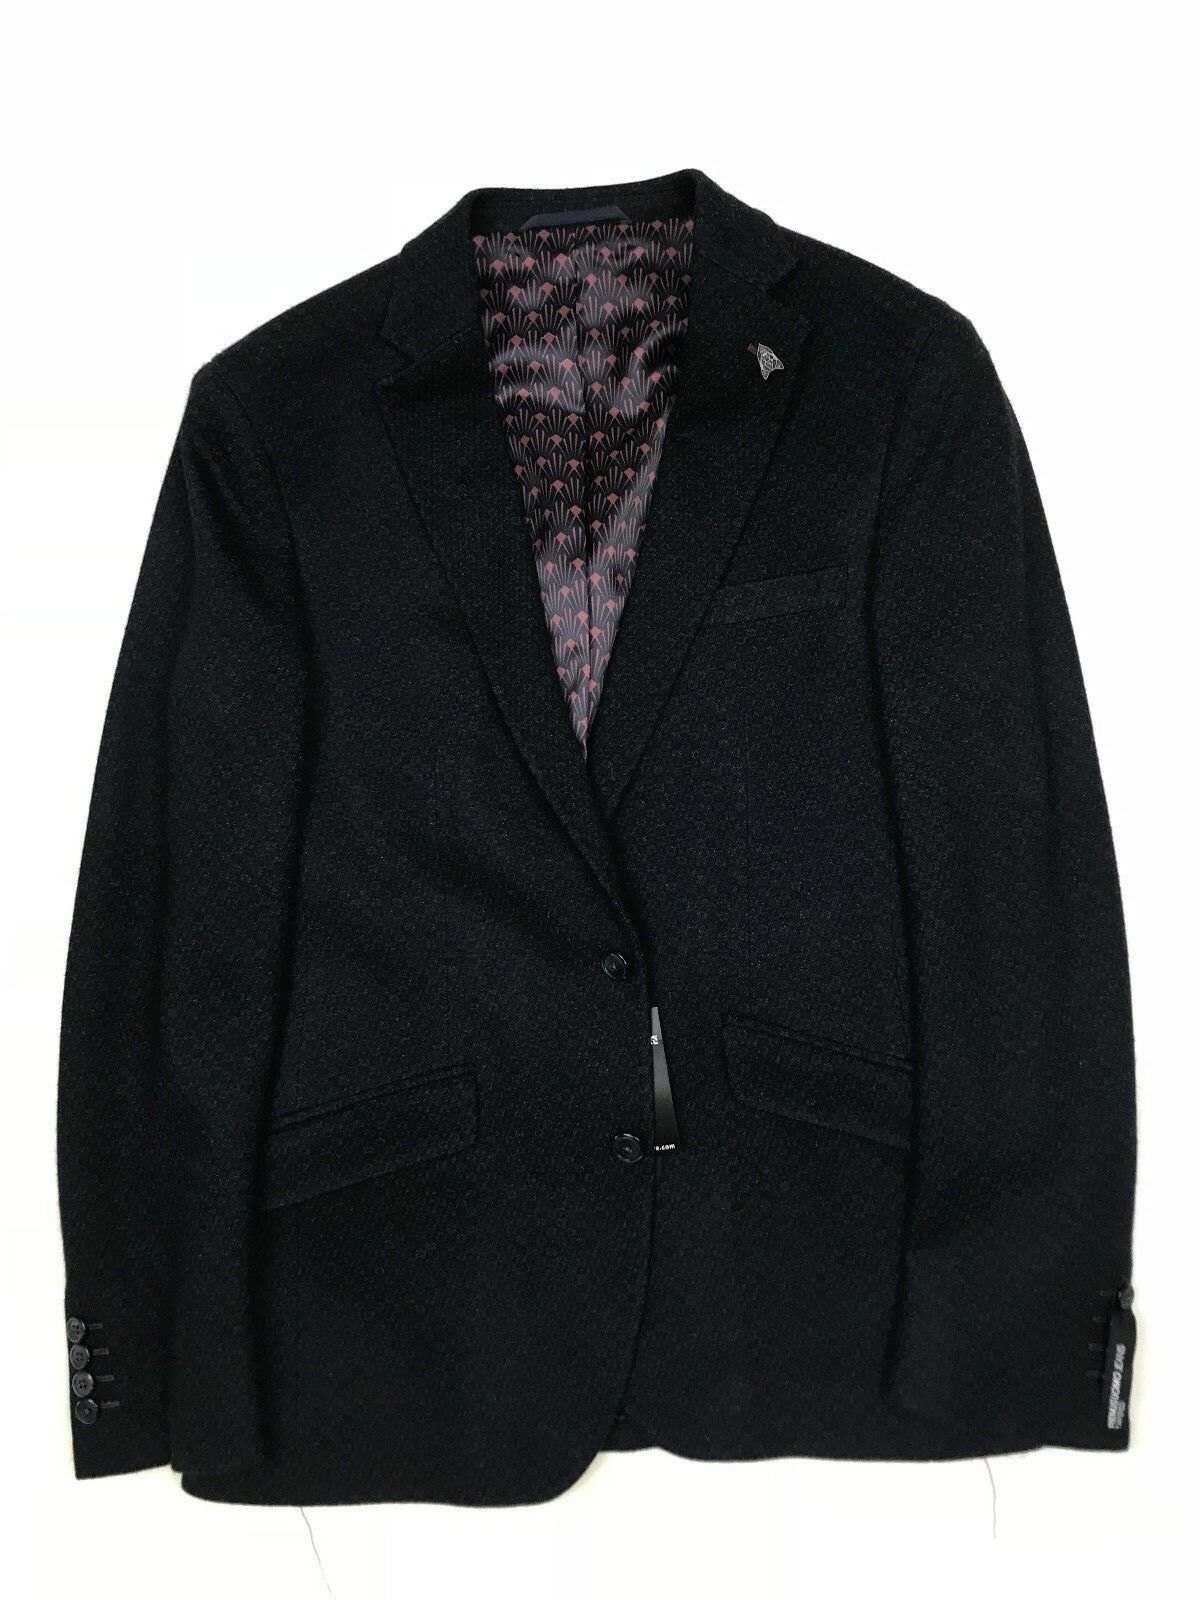 Remus  Herren - Navy Genaro Blazer - 38R - NEW WITH TAGS